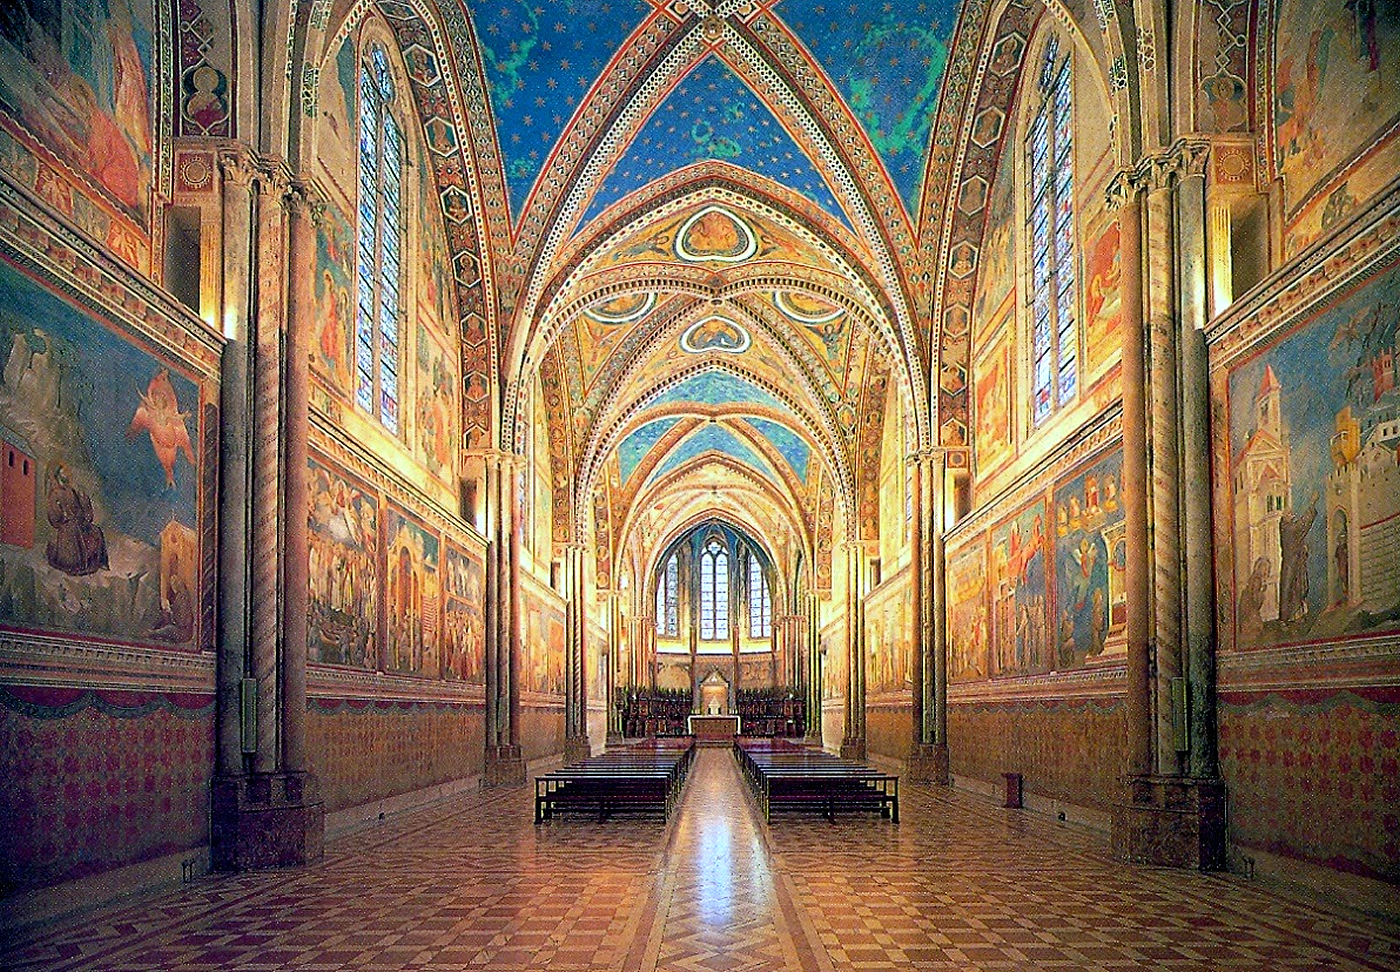 The Splendours Of Italy, Basilica of St Francis, Assisi, Italy